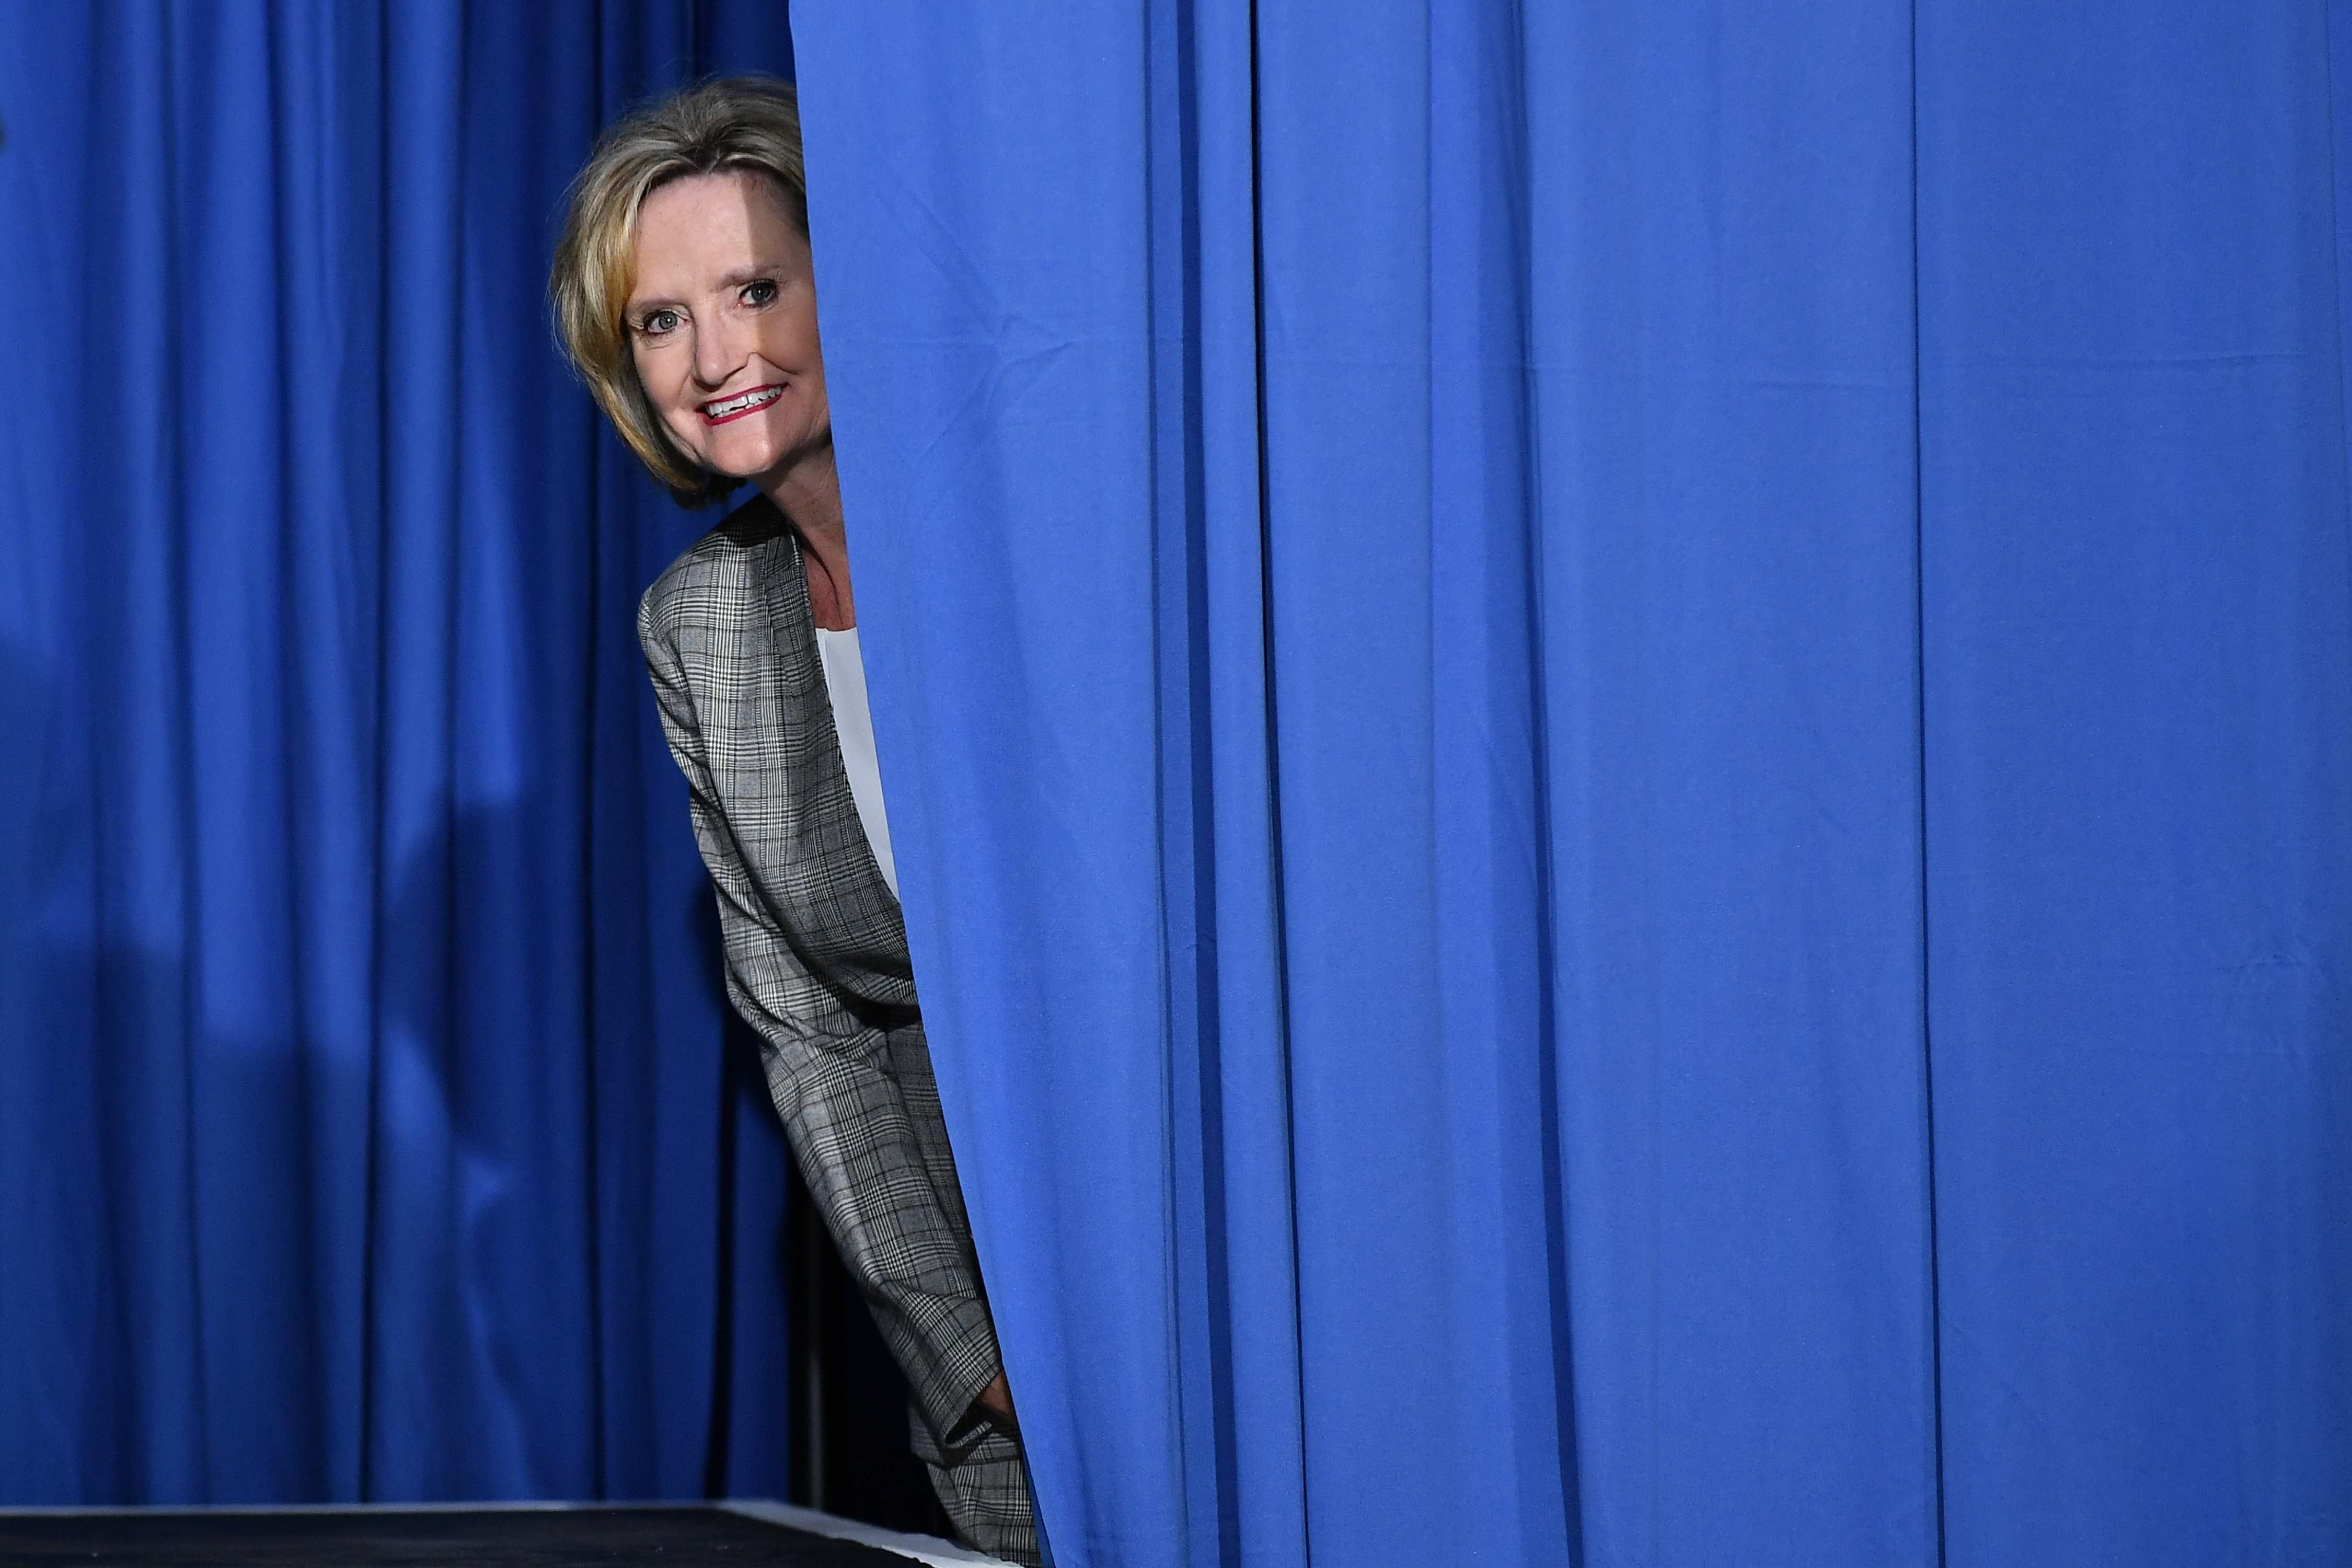 Senator Cindy Hyde-Smith peaks out from behind a curtain before a rally with US President Donald Trump at Landers Center Ð Arena in Southaven, Mississippi, on October 2, 2018